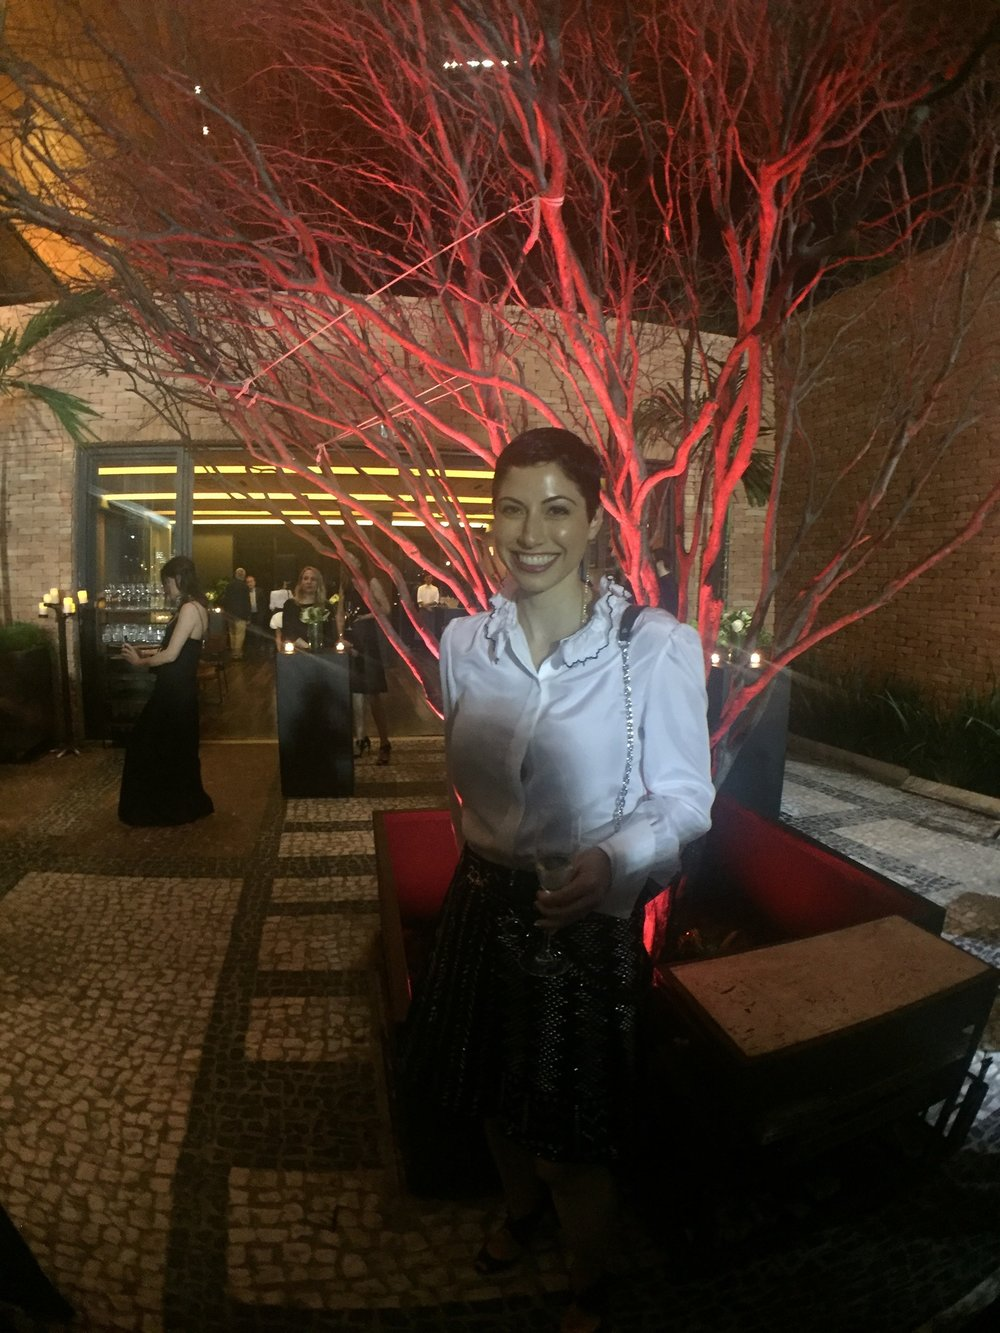 For dinner, we went to the Rubaiyat Rio which is located at the Jockey Club.